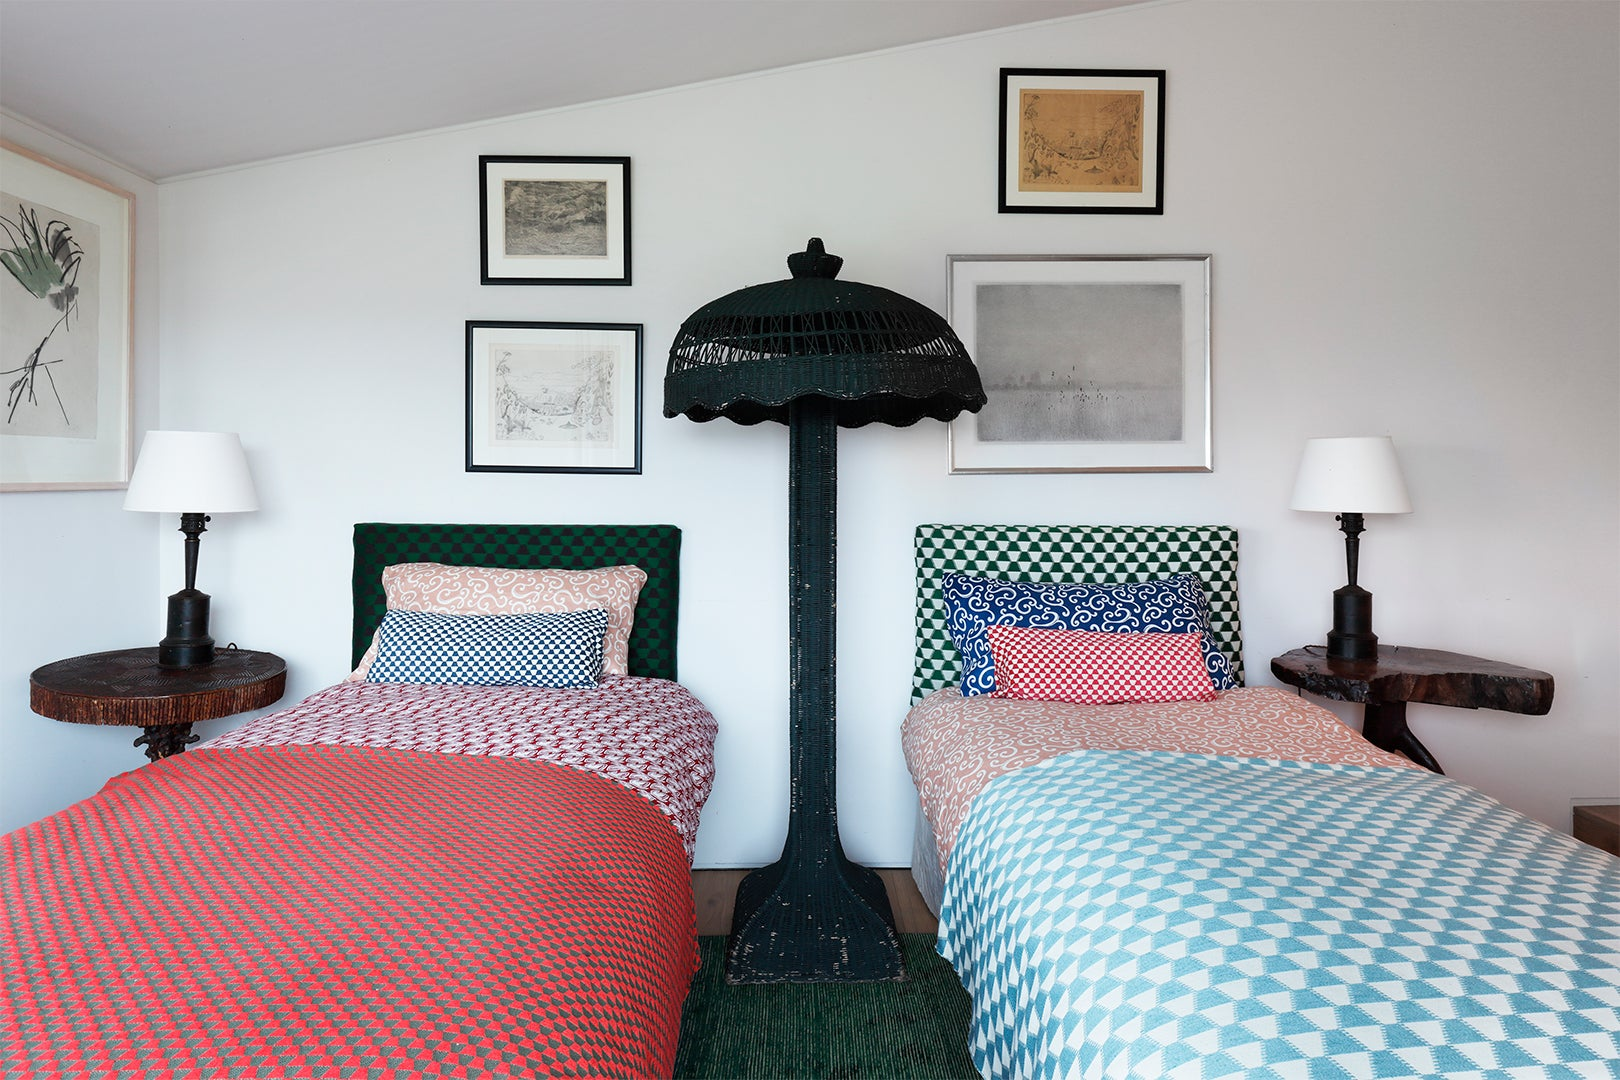 Two beds with mixed-and-matched bedding